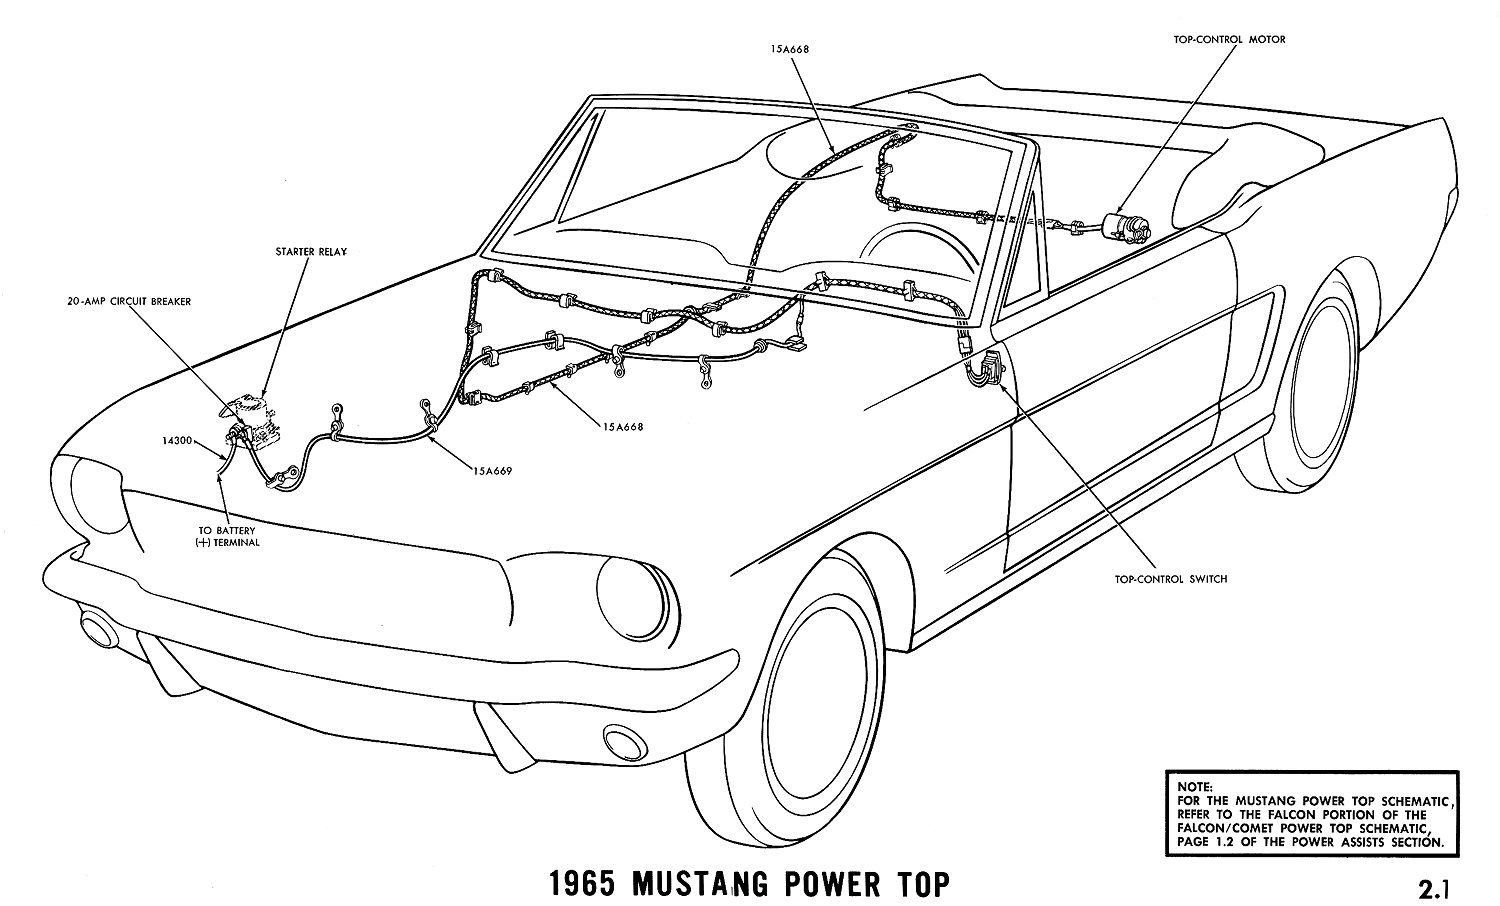 1965 Mustang Wiring Diagrams - Average Joe Restoration